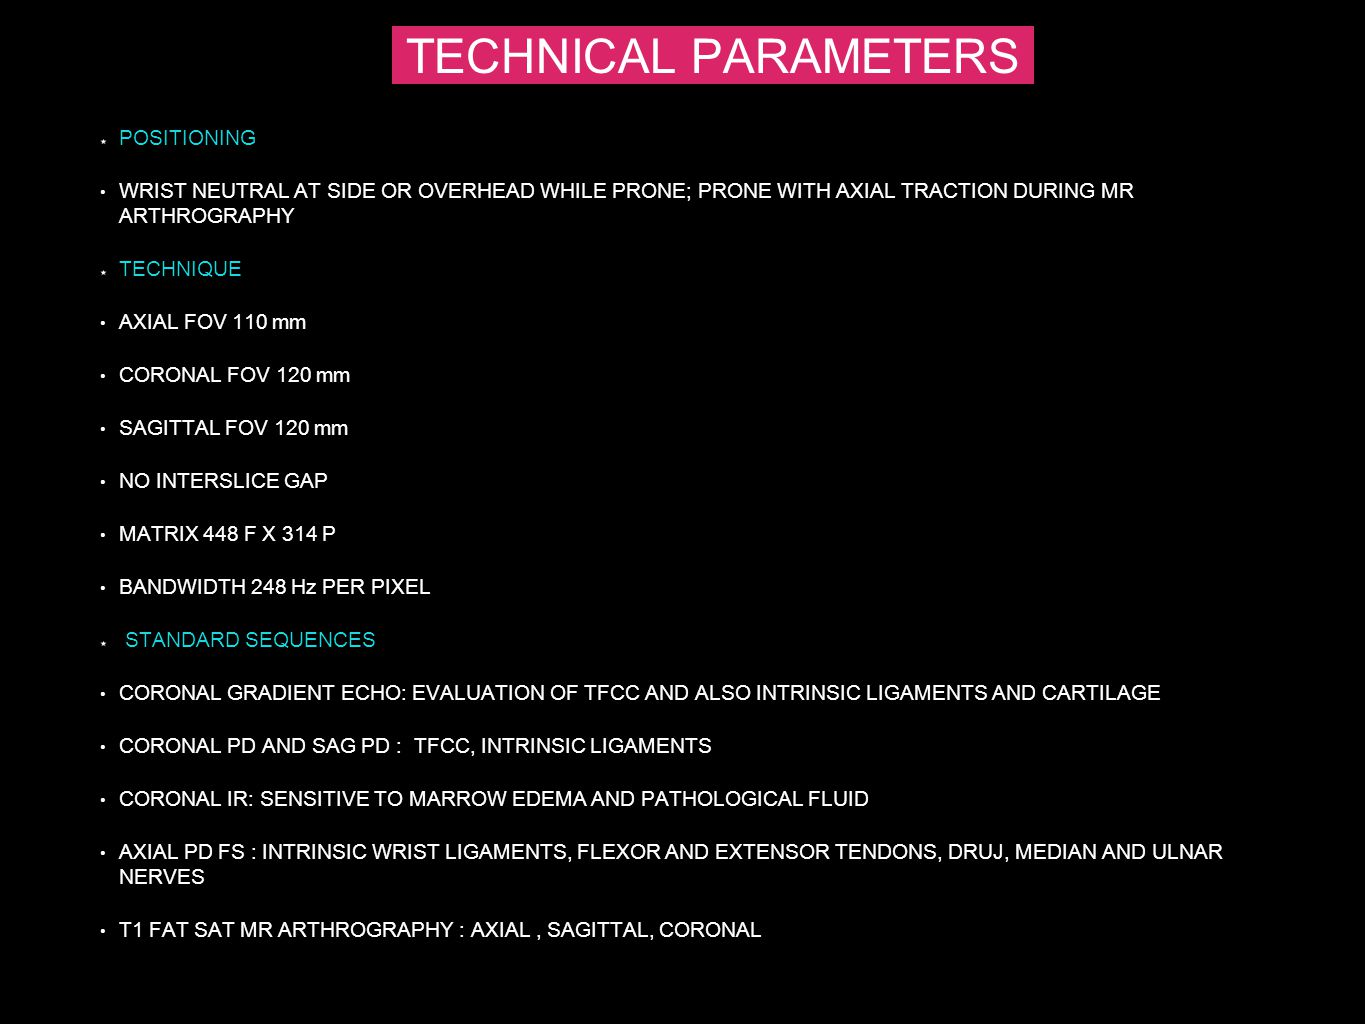 TECHNICAL PARAMETERS POSITIONING